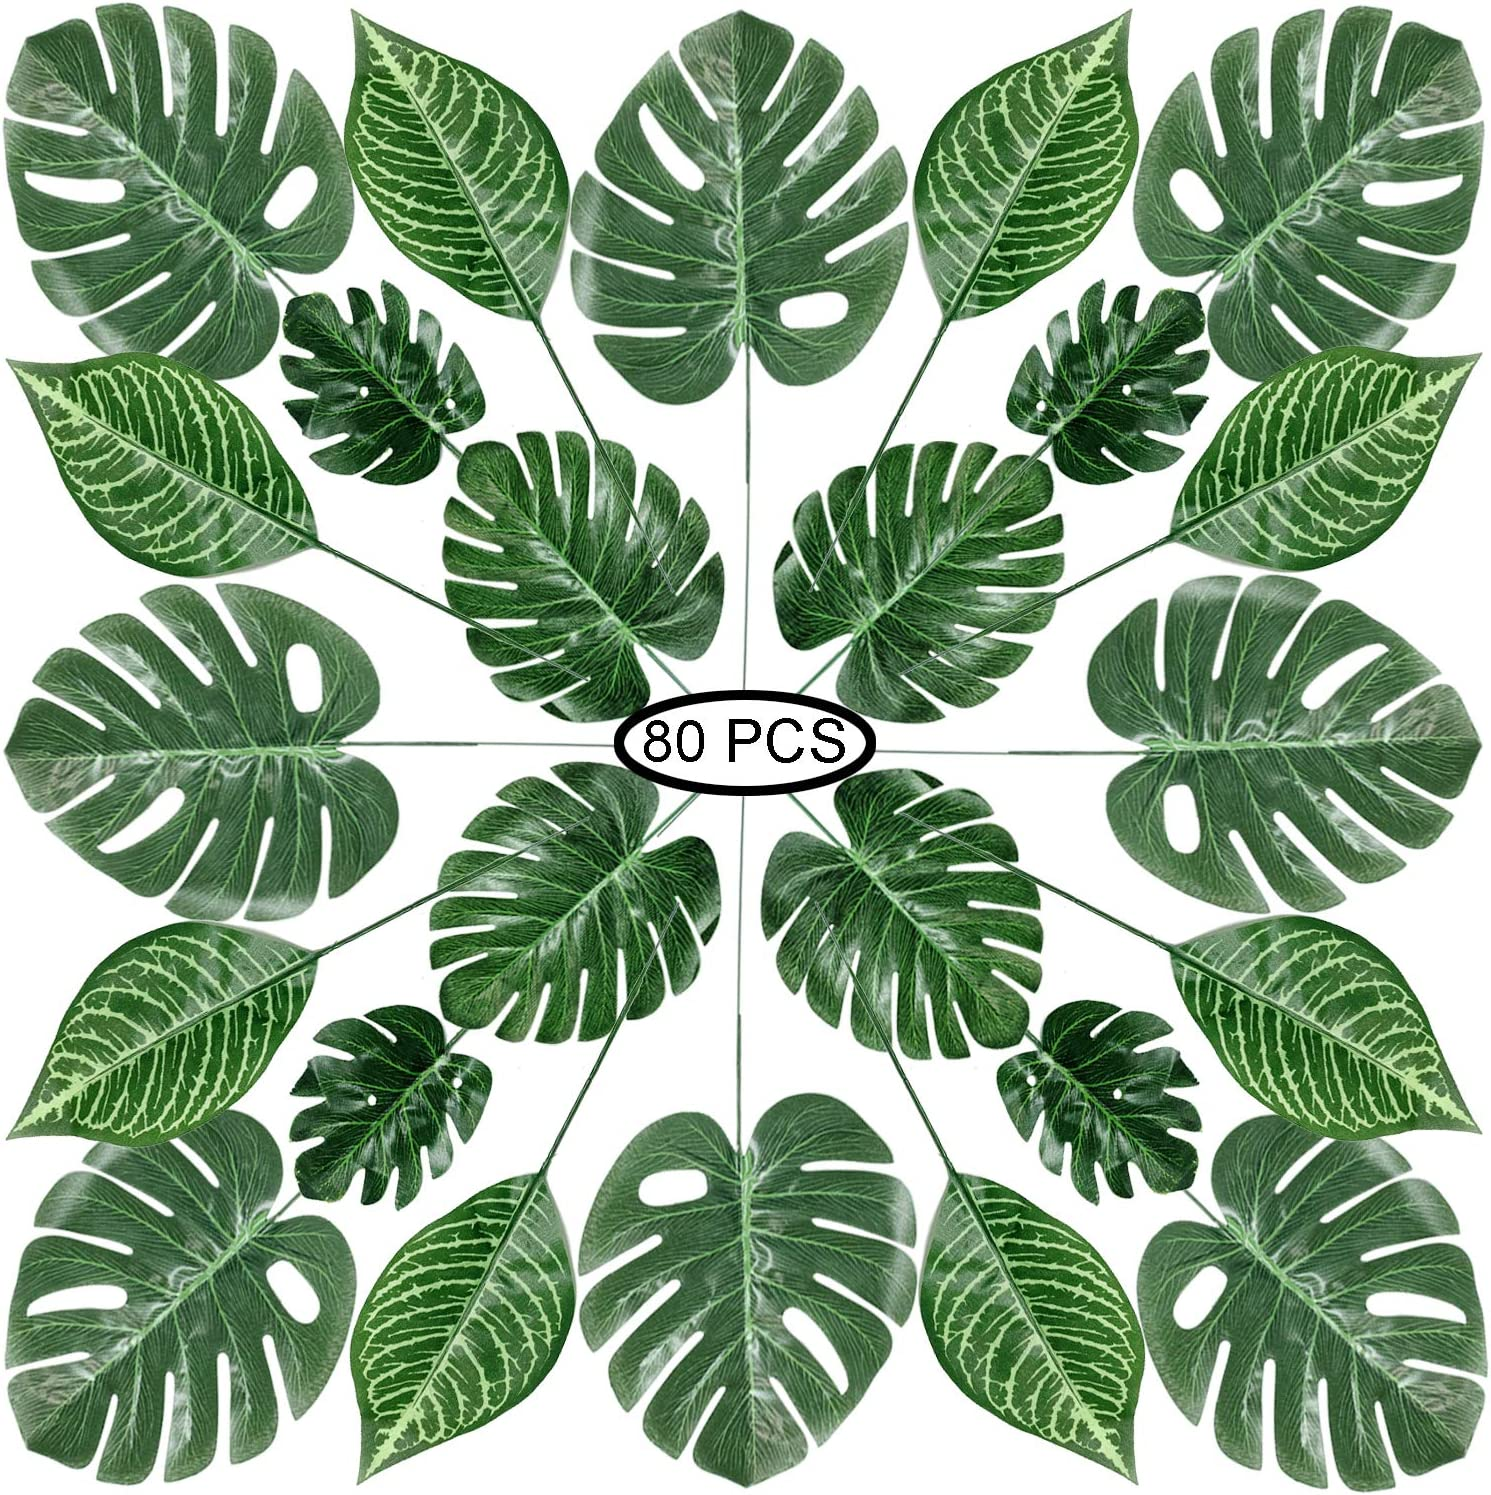 Amazon Com Recosis 80 Pieces 4 Kinds Artificial Palm Leaves With Stems Faux Monstera Leaves Tropical Plant Simulation Safari Leaves For Tropical Leaves Decorations Beach Birthday Jungle Hawaiian Luau Party Home Kitchen About 23% of these are artificial plant. recosis 80 pieces 4 kinds artificial palm leaves with stems faux monstera leaves tropical plant simulation safari leaves for tropical leaves